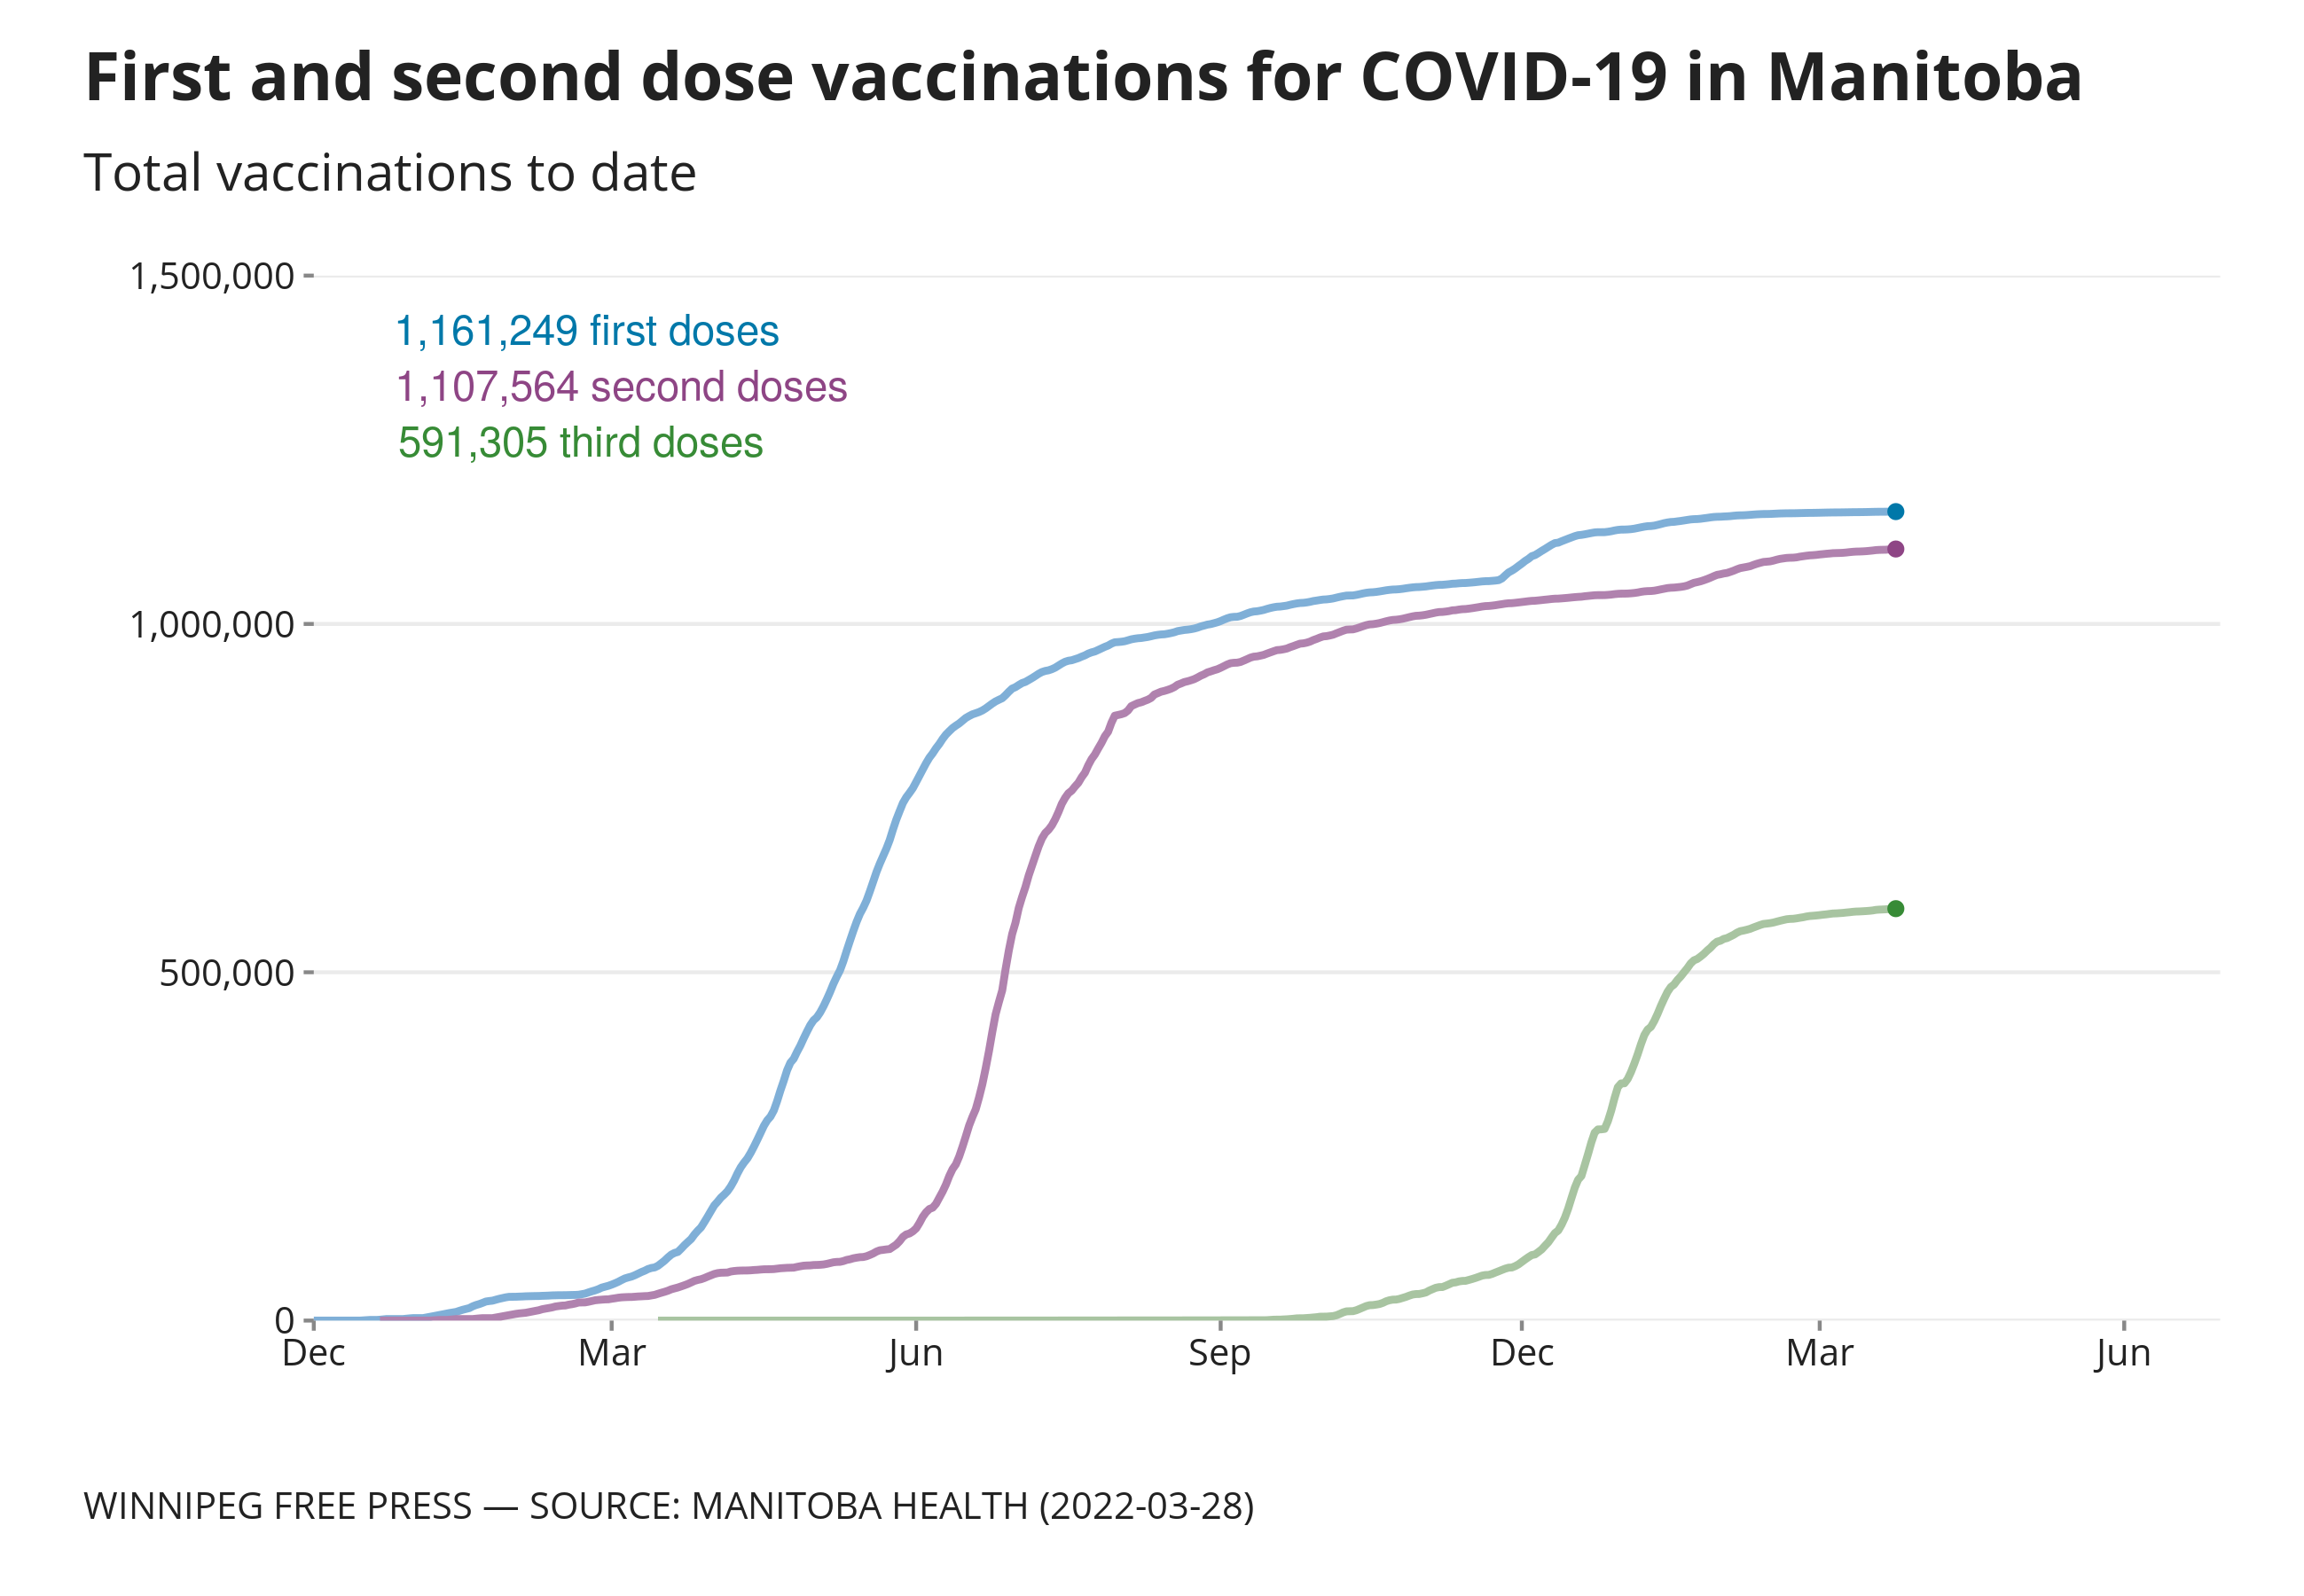 Graphic showing daily doses of COVID-19 vaccines administered in Manitoba